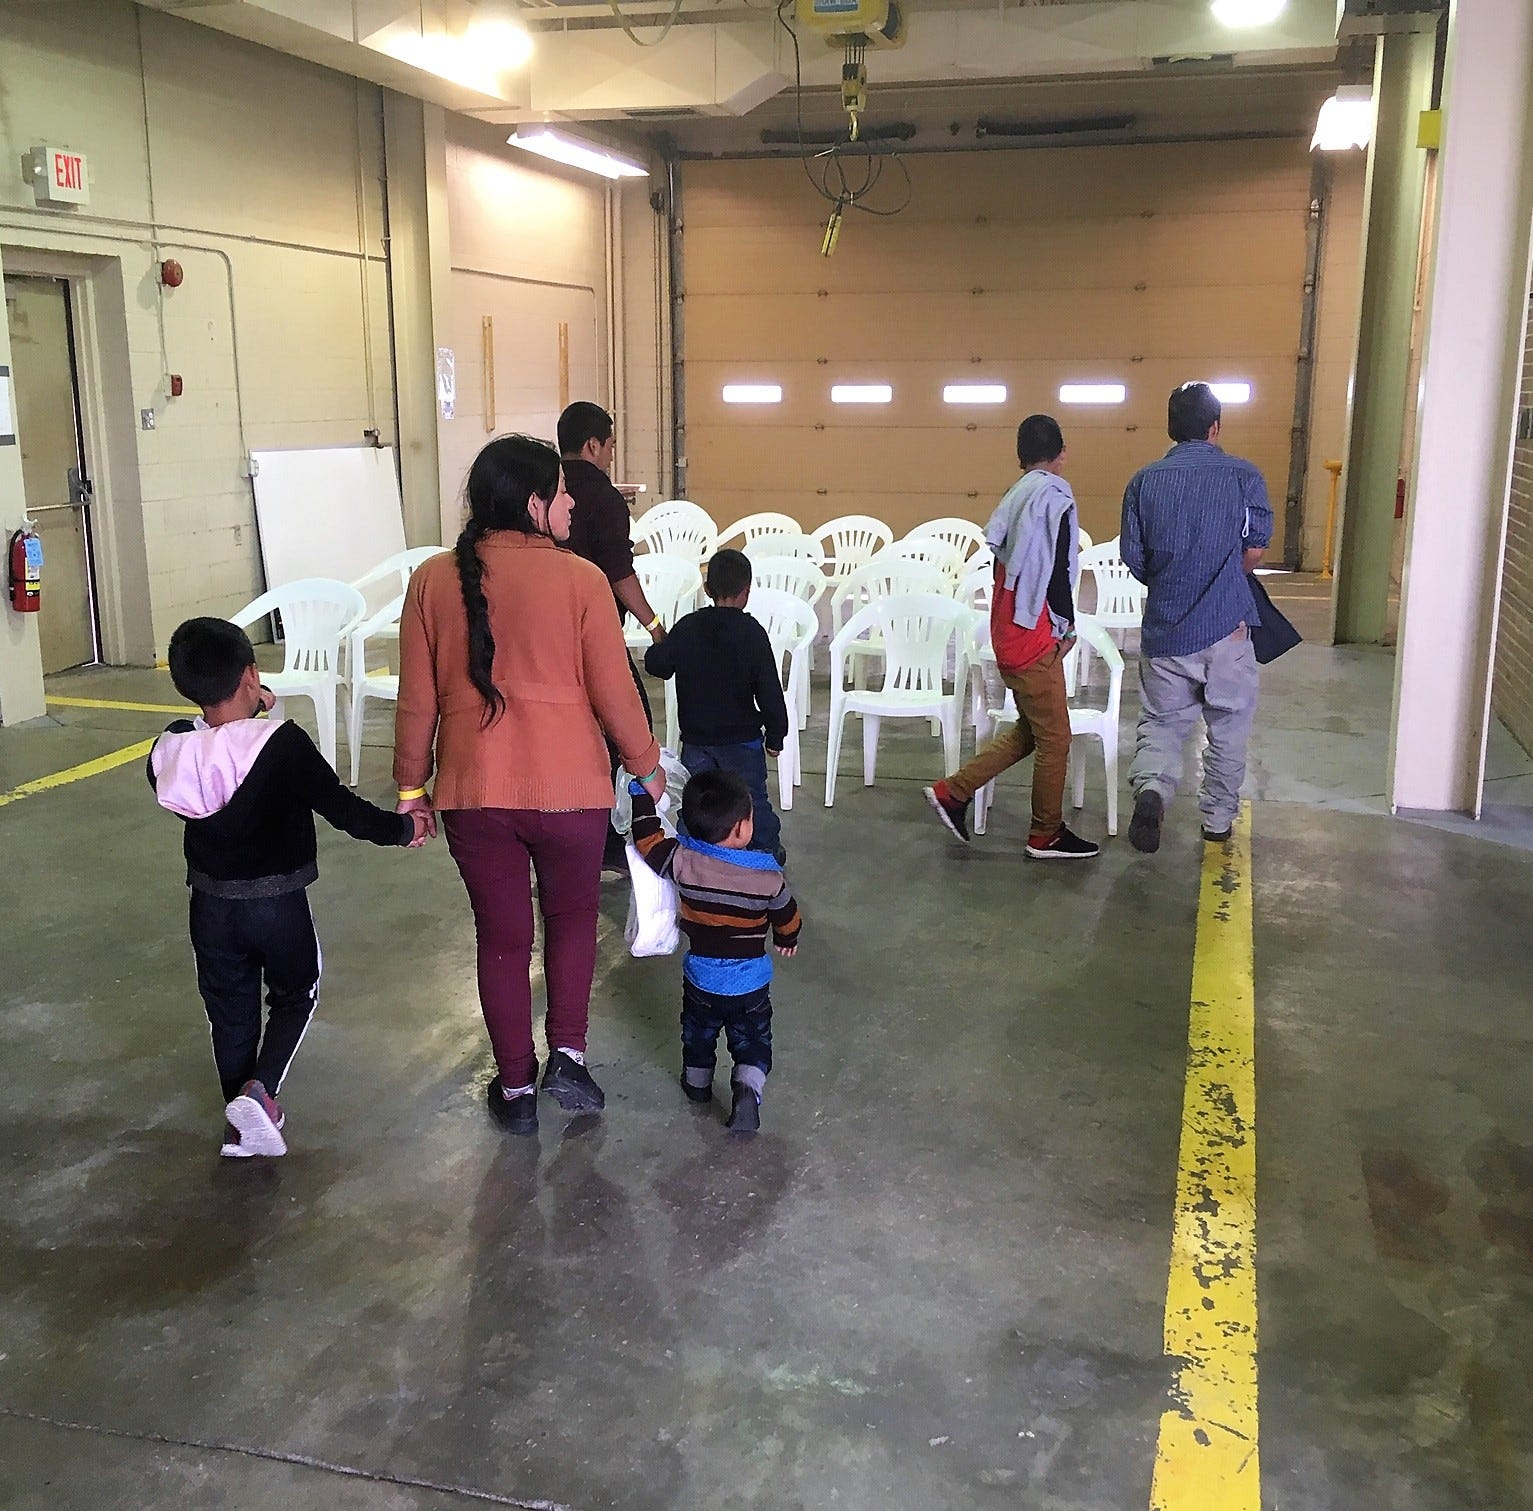 Border Patrol has released 5,000 asylum seekers in Las Cruces